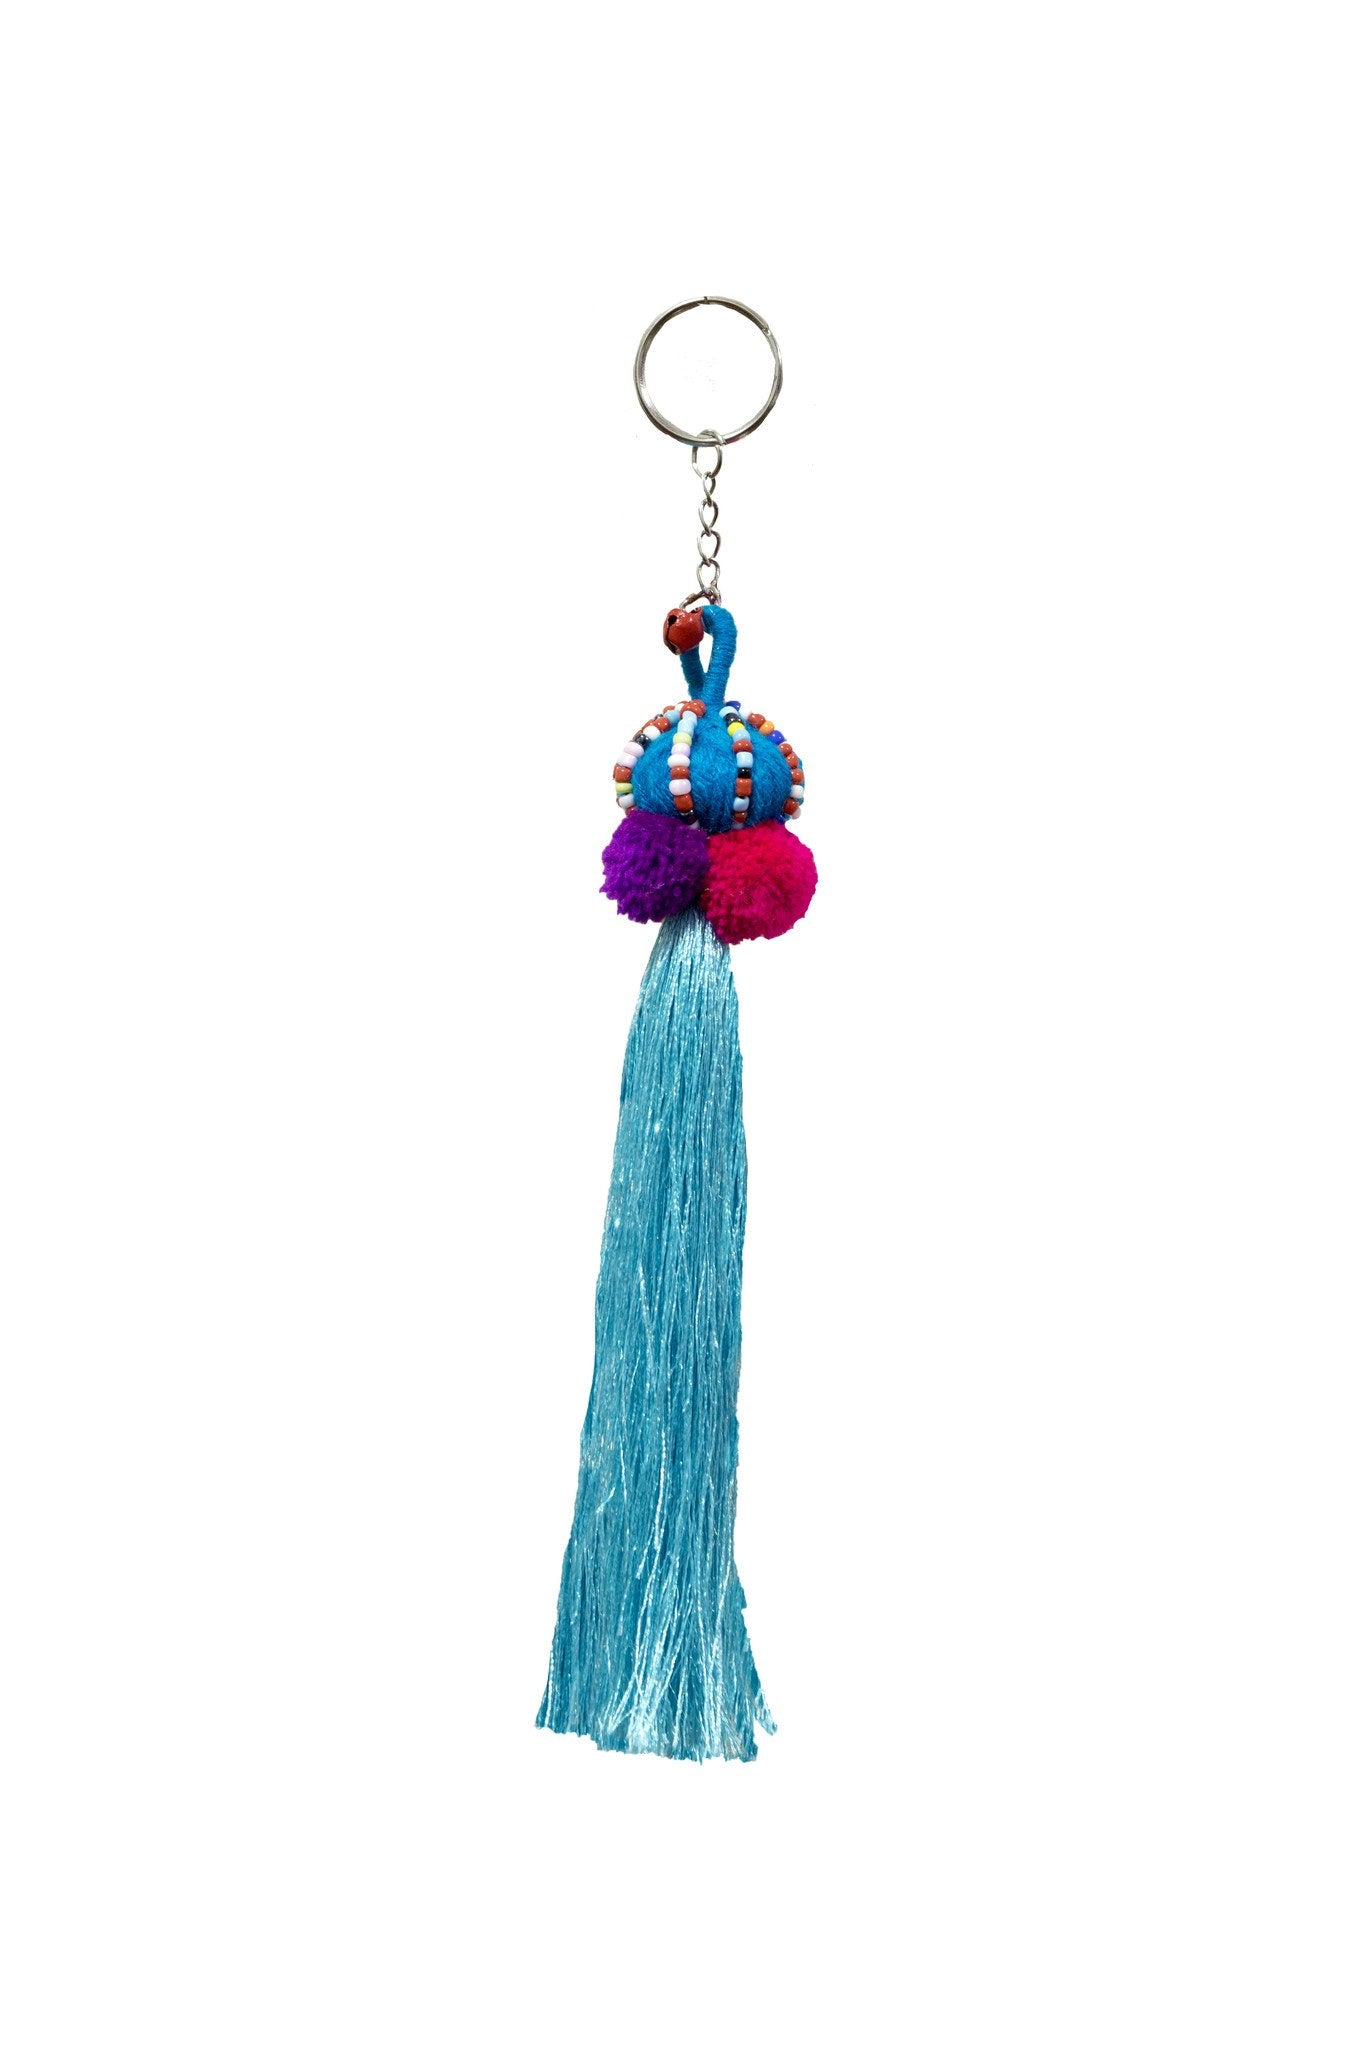 Hilltribe Keychains / Keyrings handmade lucky charm - CCCollections